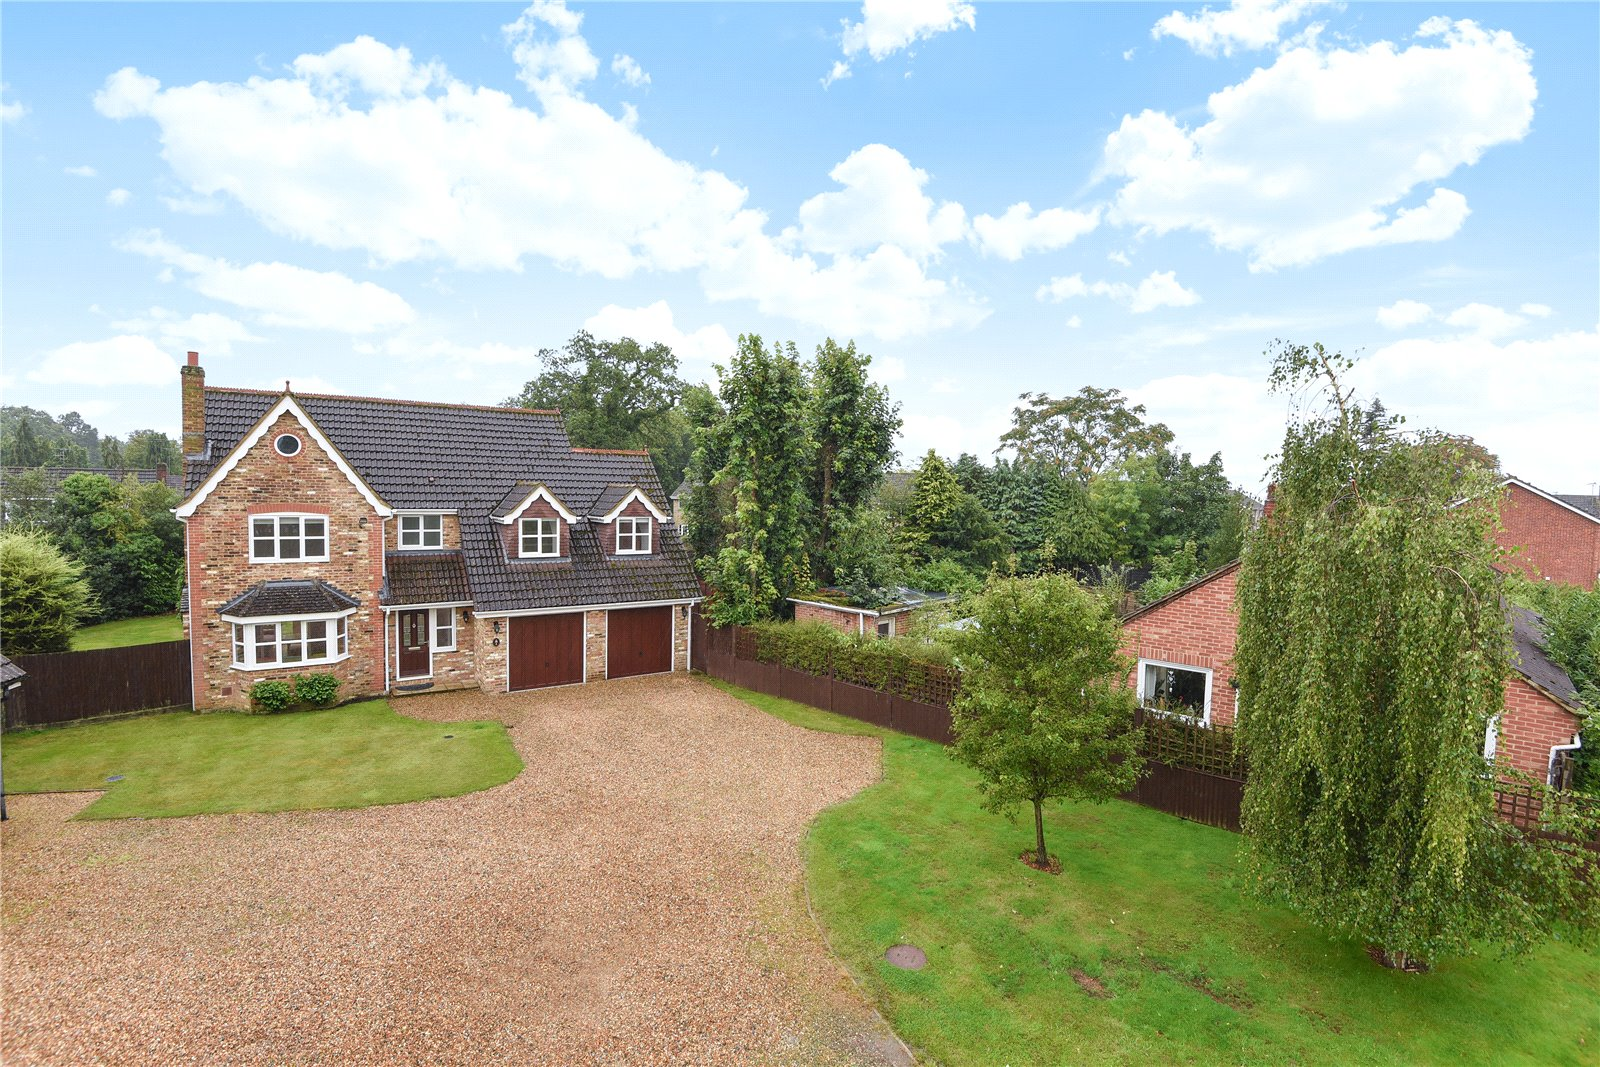 5 Bedrooms Detached House for sale in Lacewood Gardens, Reading, Berkshire, RG2